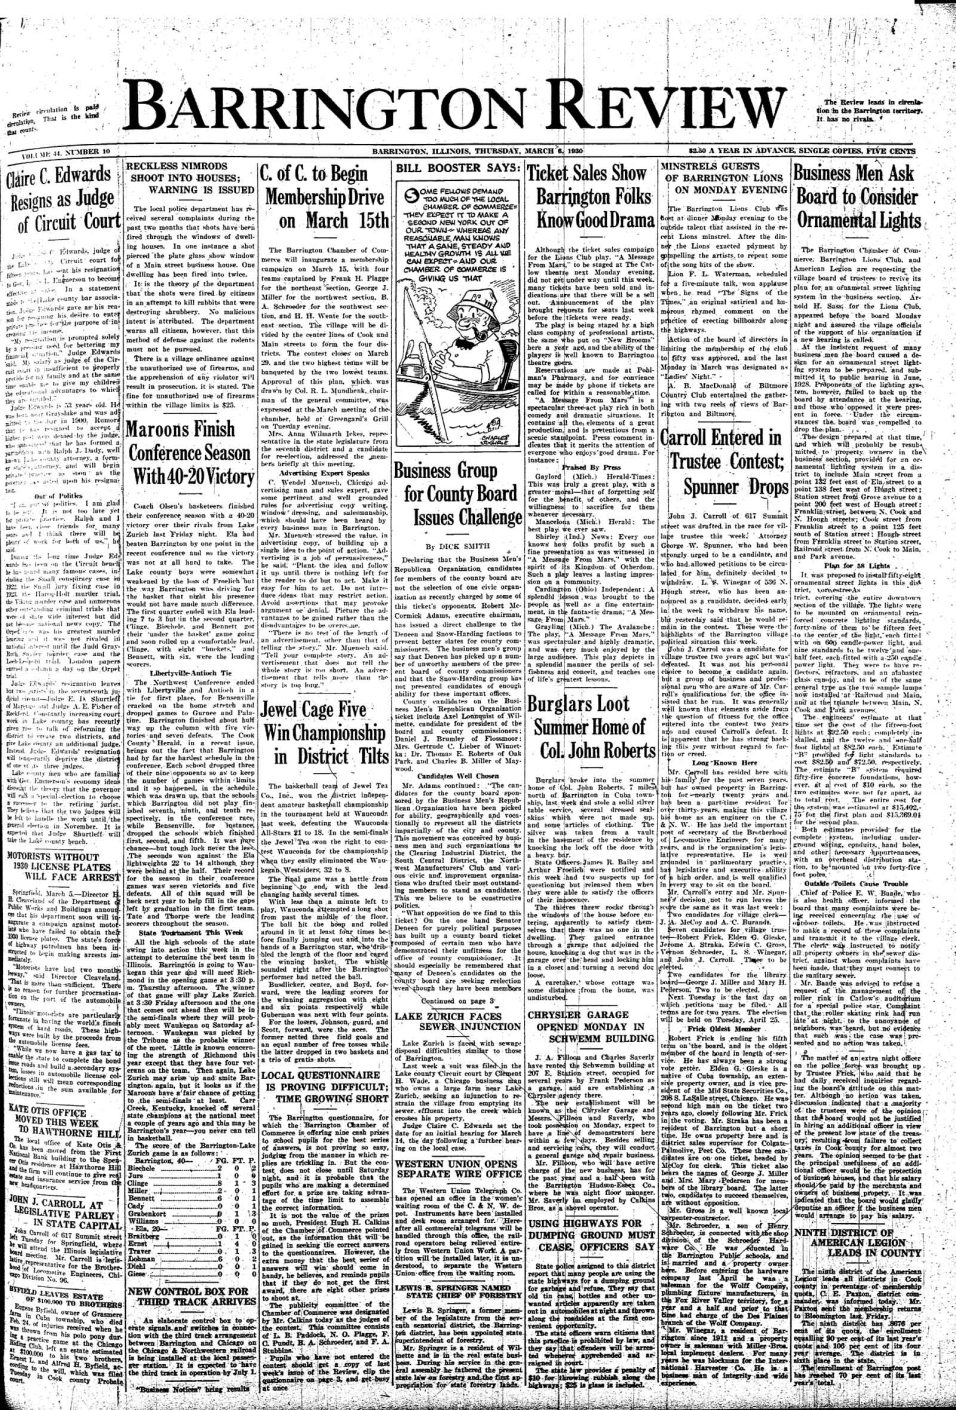 Barrington Review - March 6, 1930